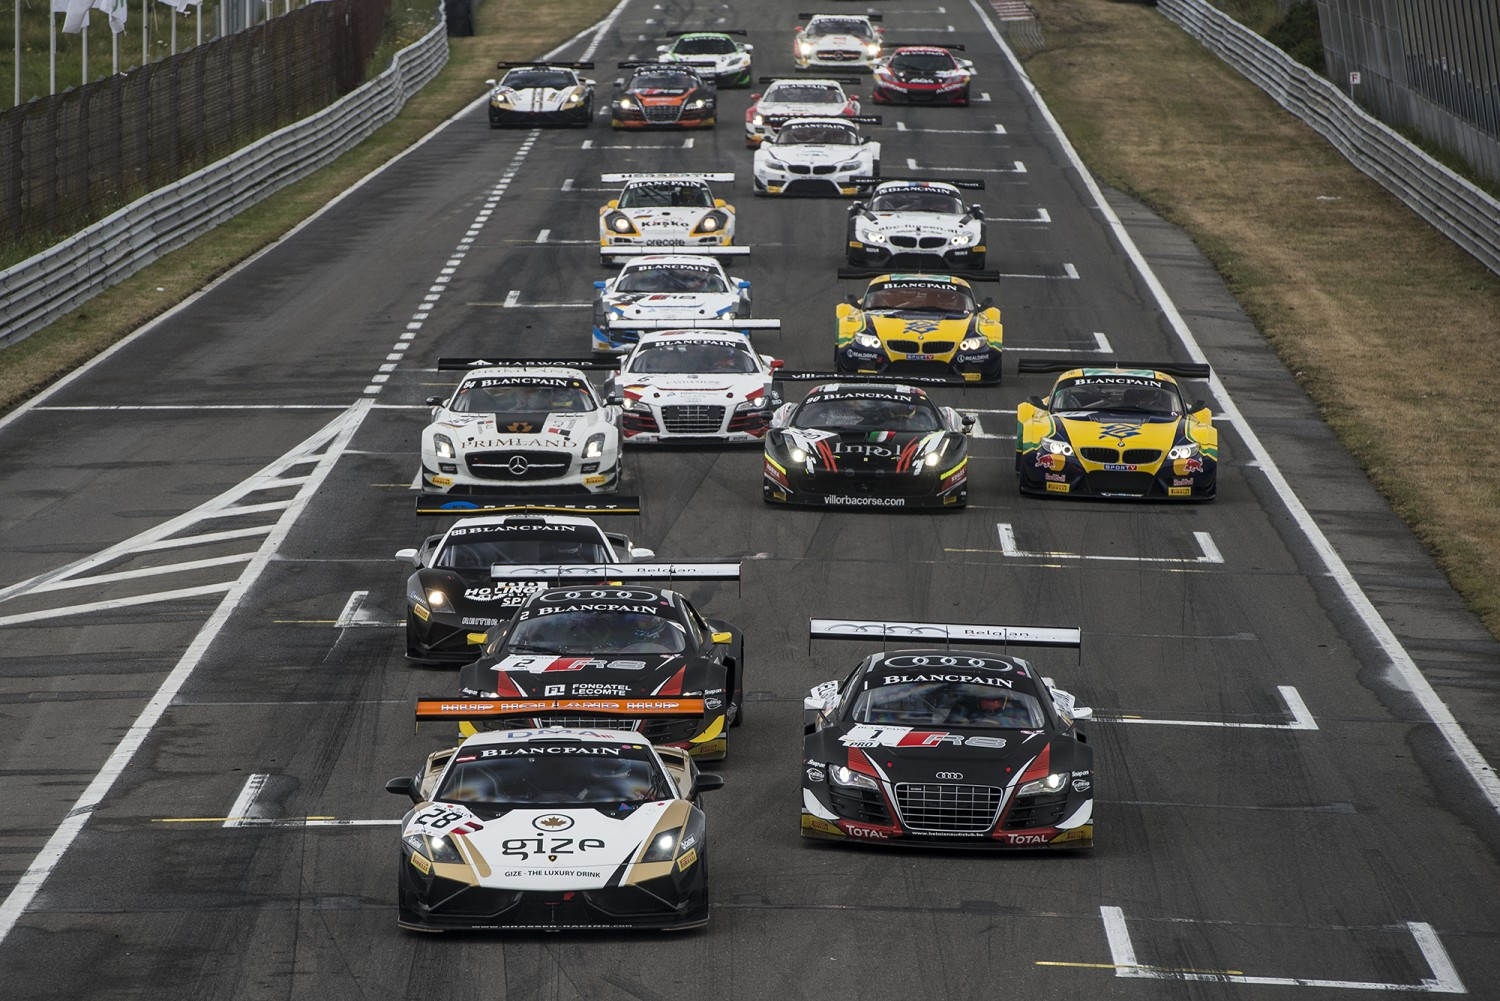 Title contenders will try to close the gap in Zolder